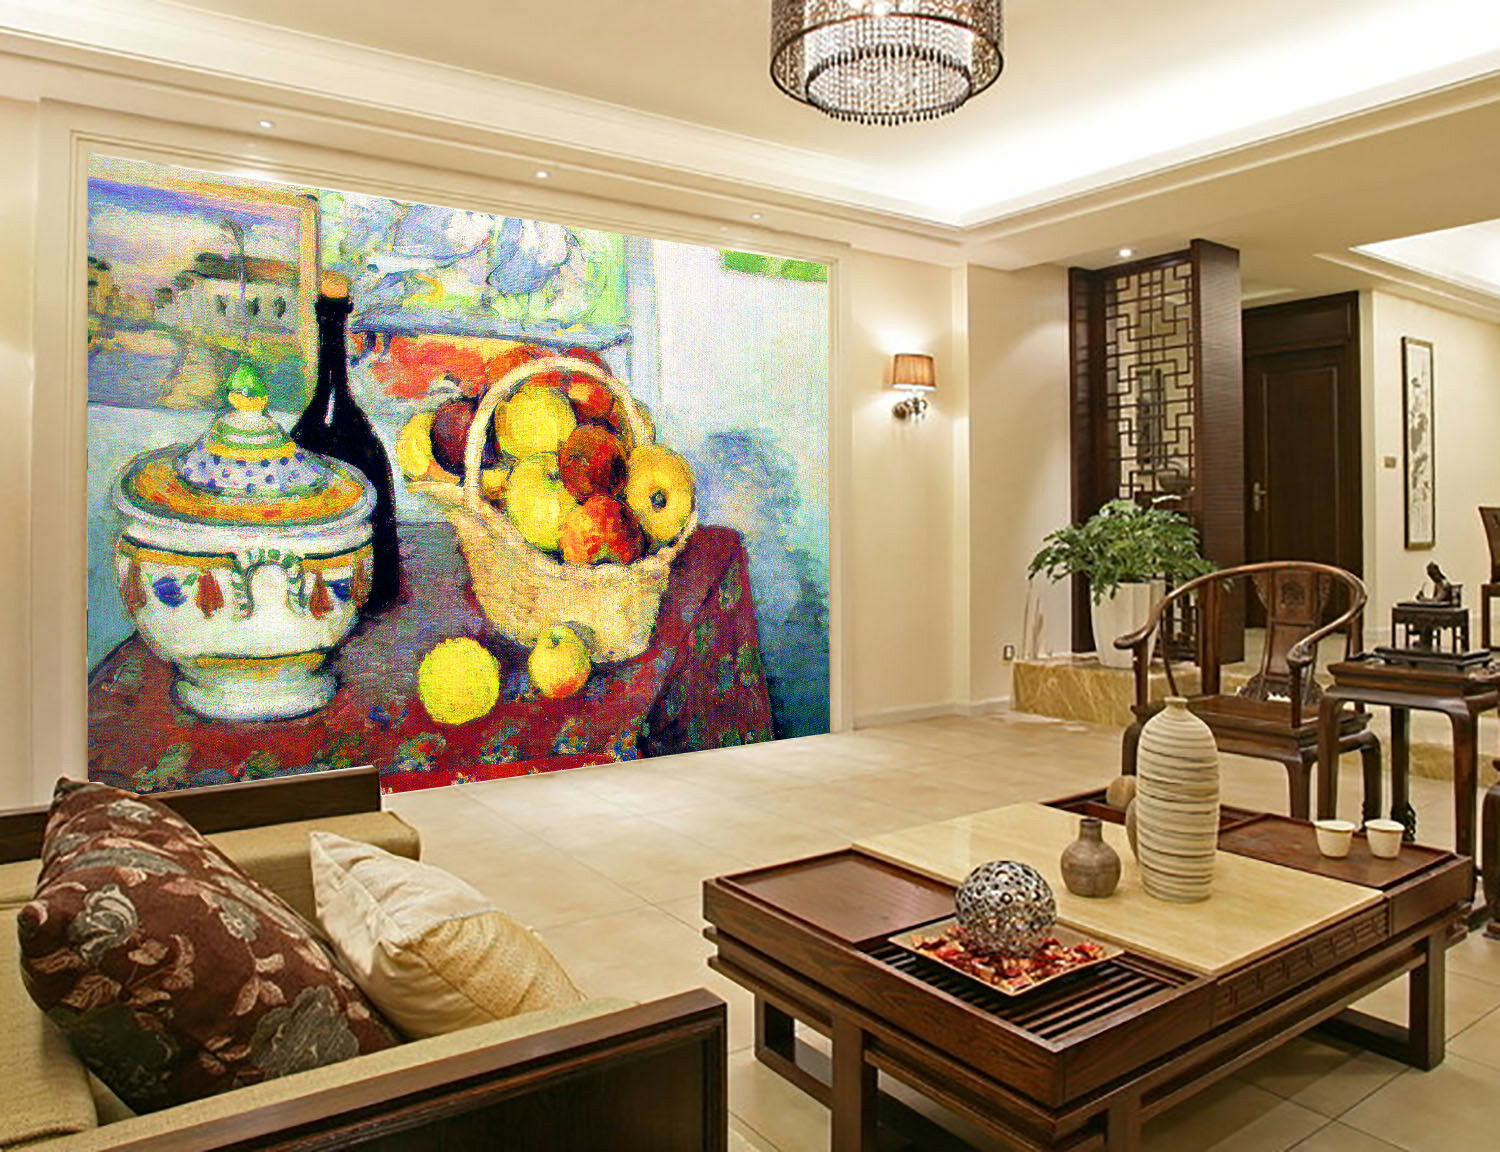 3D Oil Painting Art 512 Wall Paper Wall Print Decal Wall Deco Indoor Mural Carly